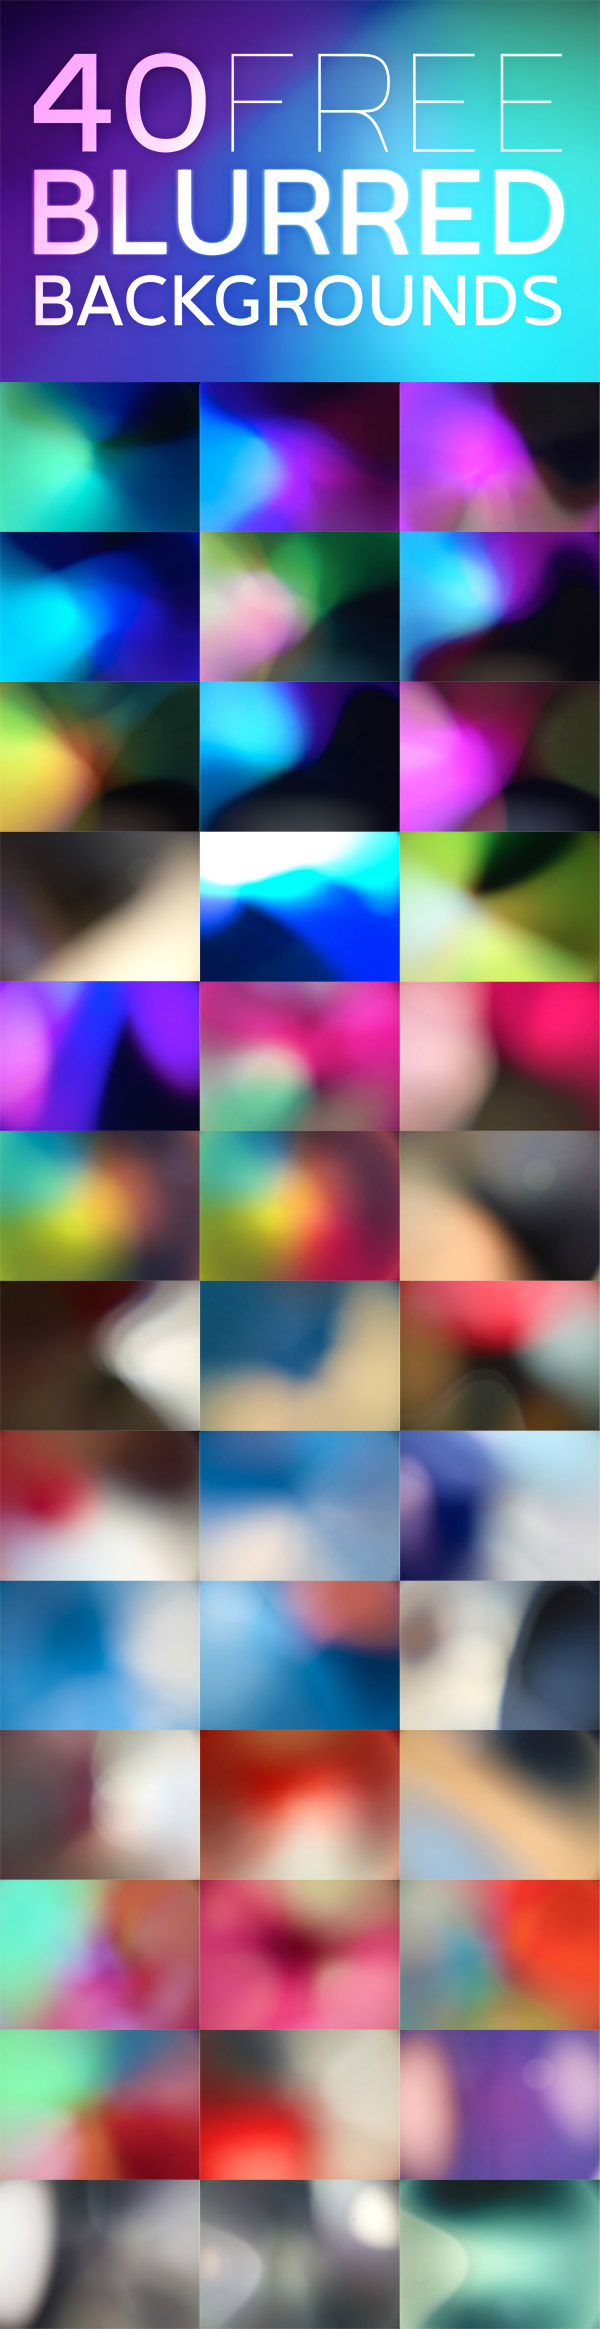 40 Free Blurred Backgrounds